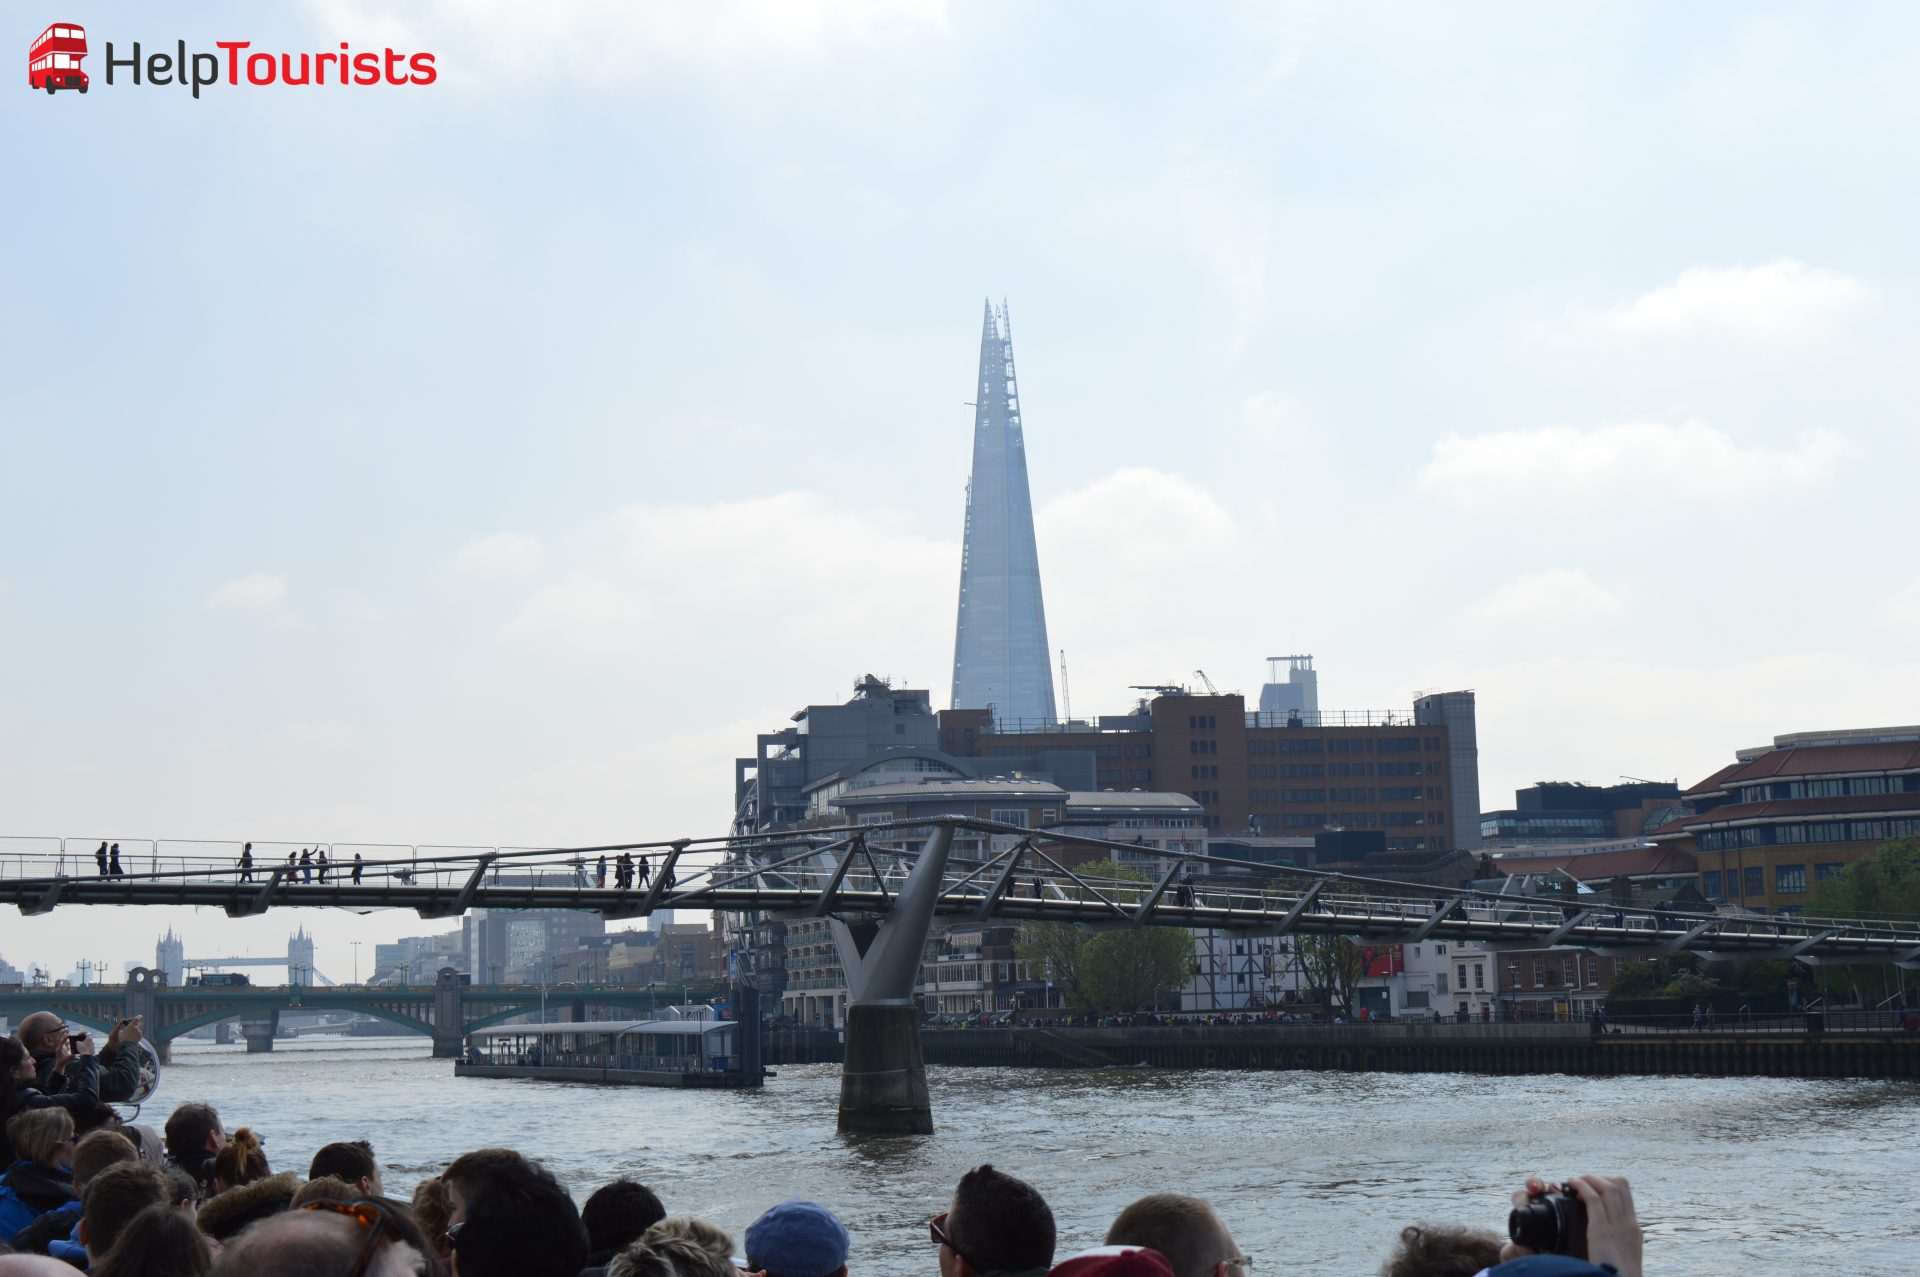 London Millennium Bridge und Wolkenkratzer